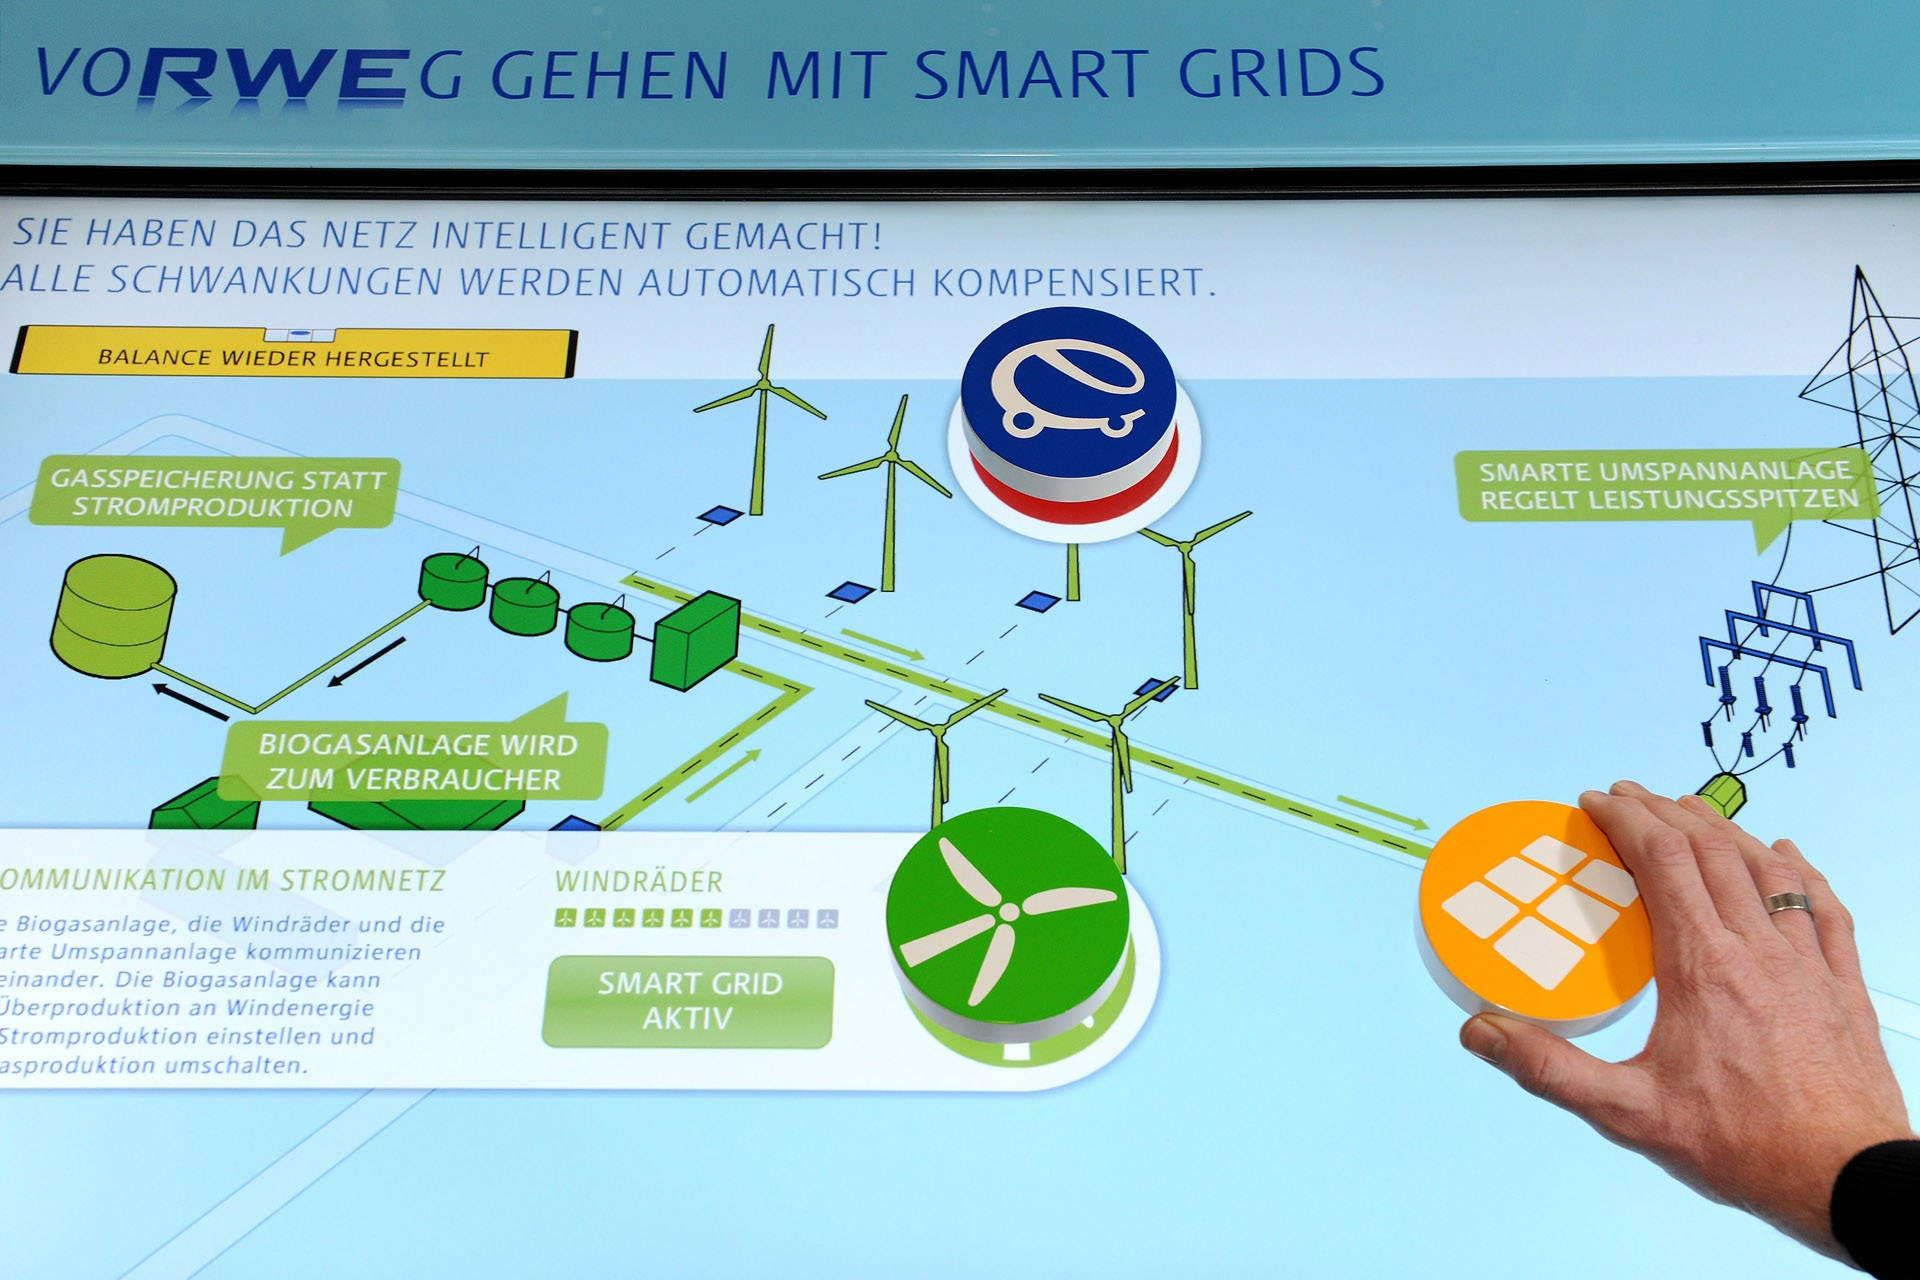 raumhoch | rwe smart grids multitouch-anwendung | apps | pinterest